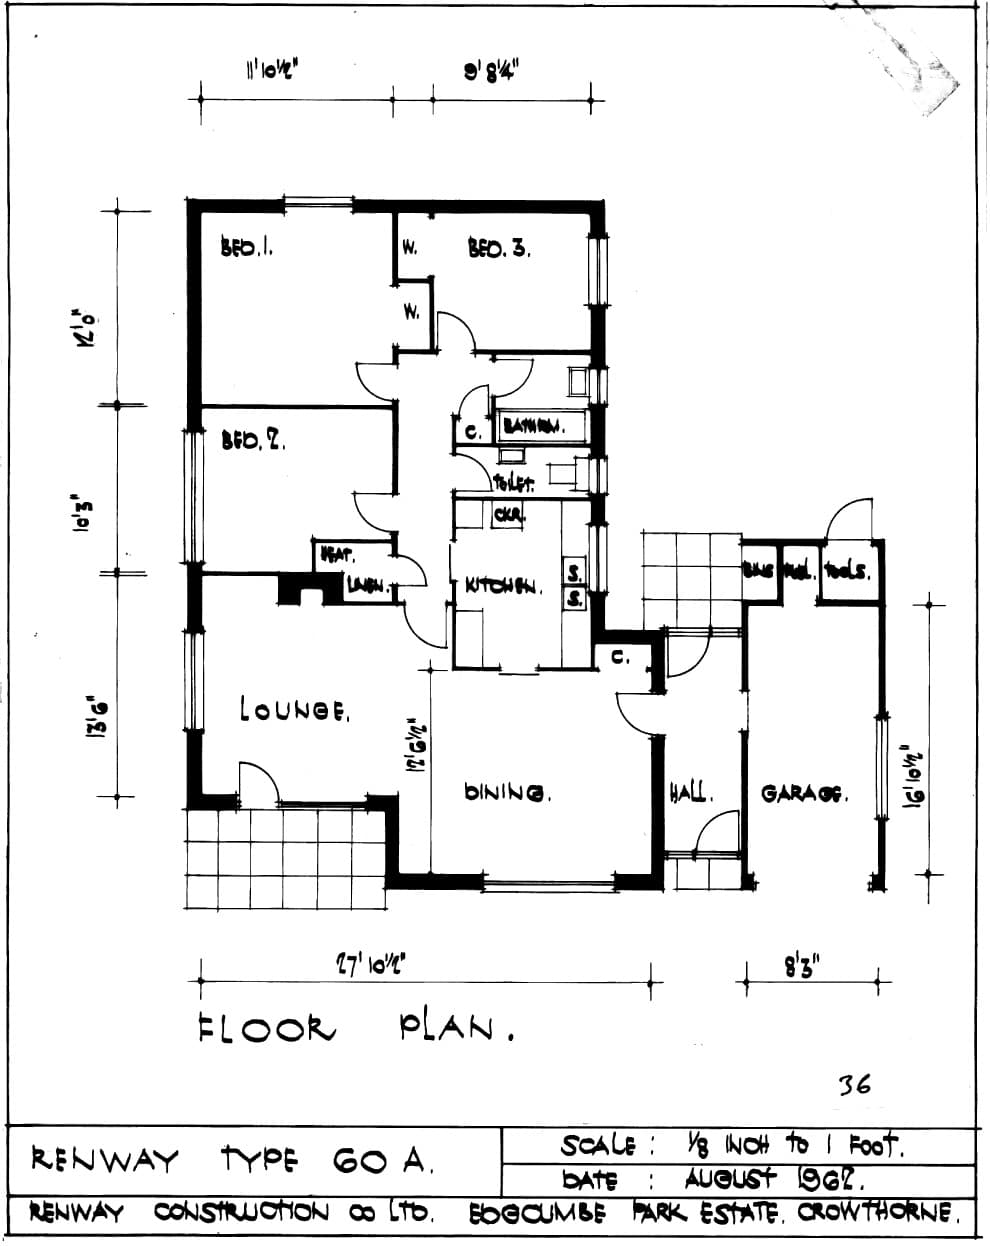 House plans and design architect plans for bungalows for Architecture plan drawing